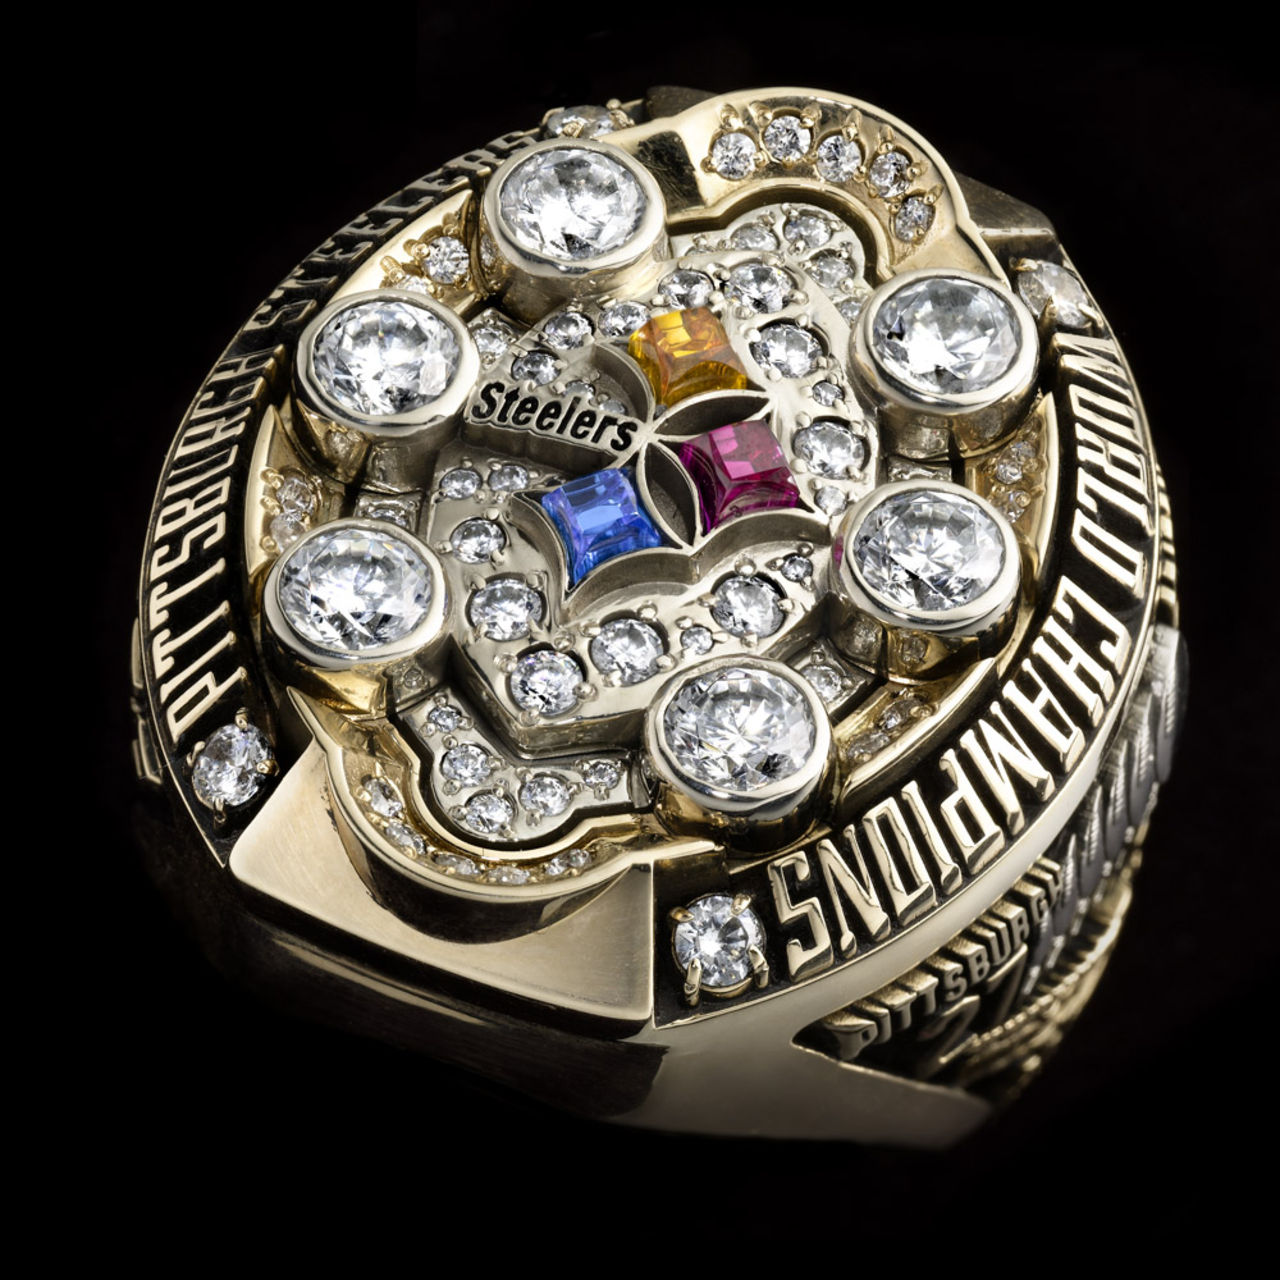 nfl time best for all ring ranked this an image rings ranking bowl super by is released photos cowboys broncos win the patriots new of steelers england